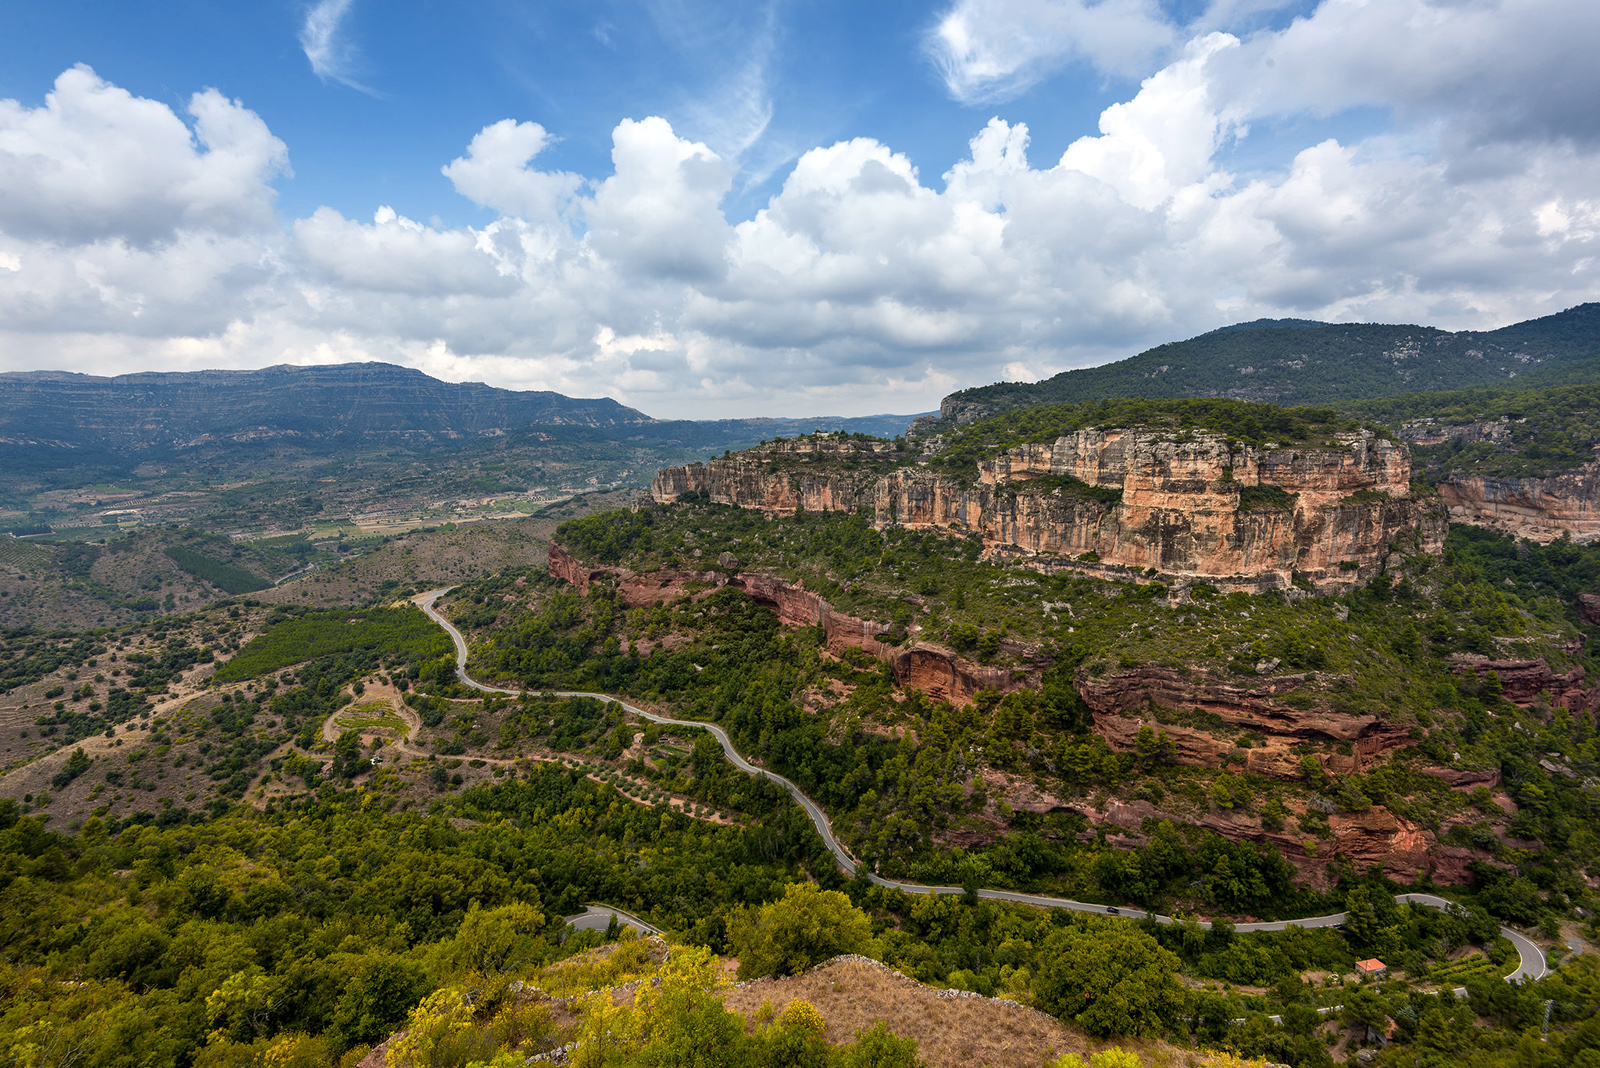 Priorat wine region driving roads by Cosmo_71